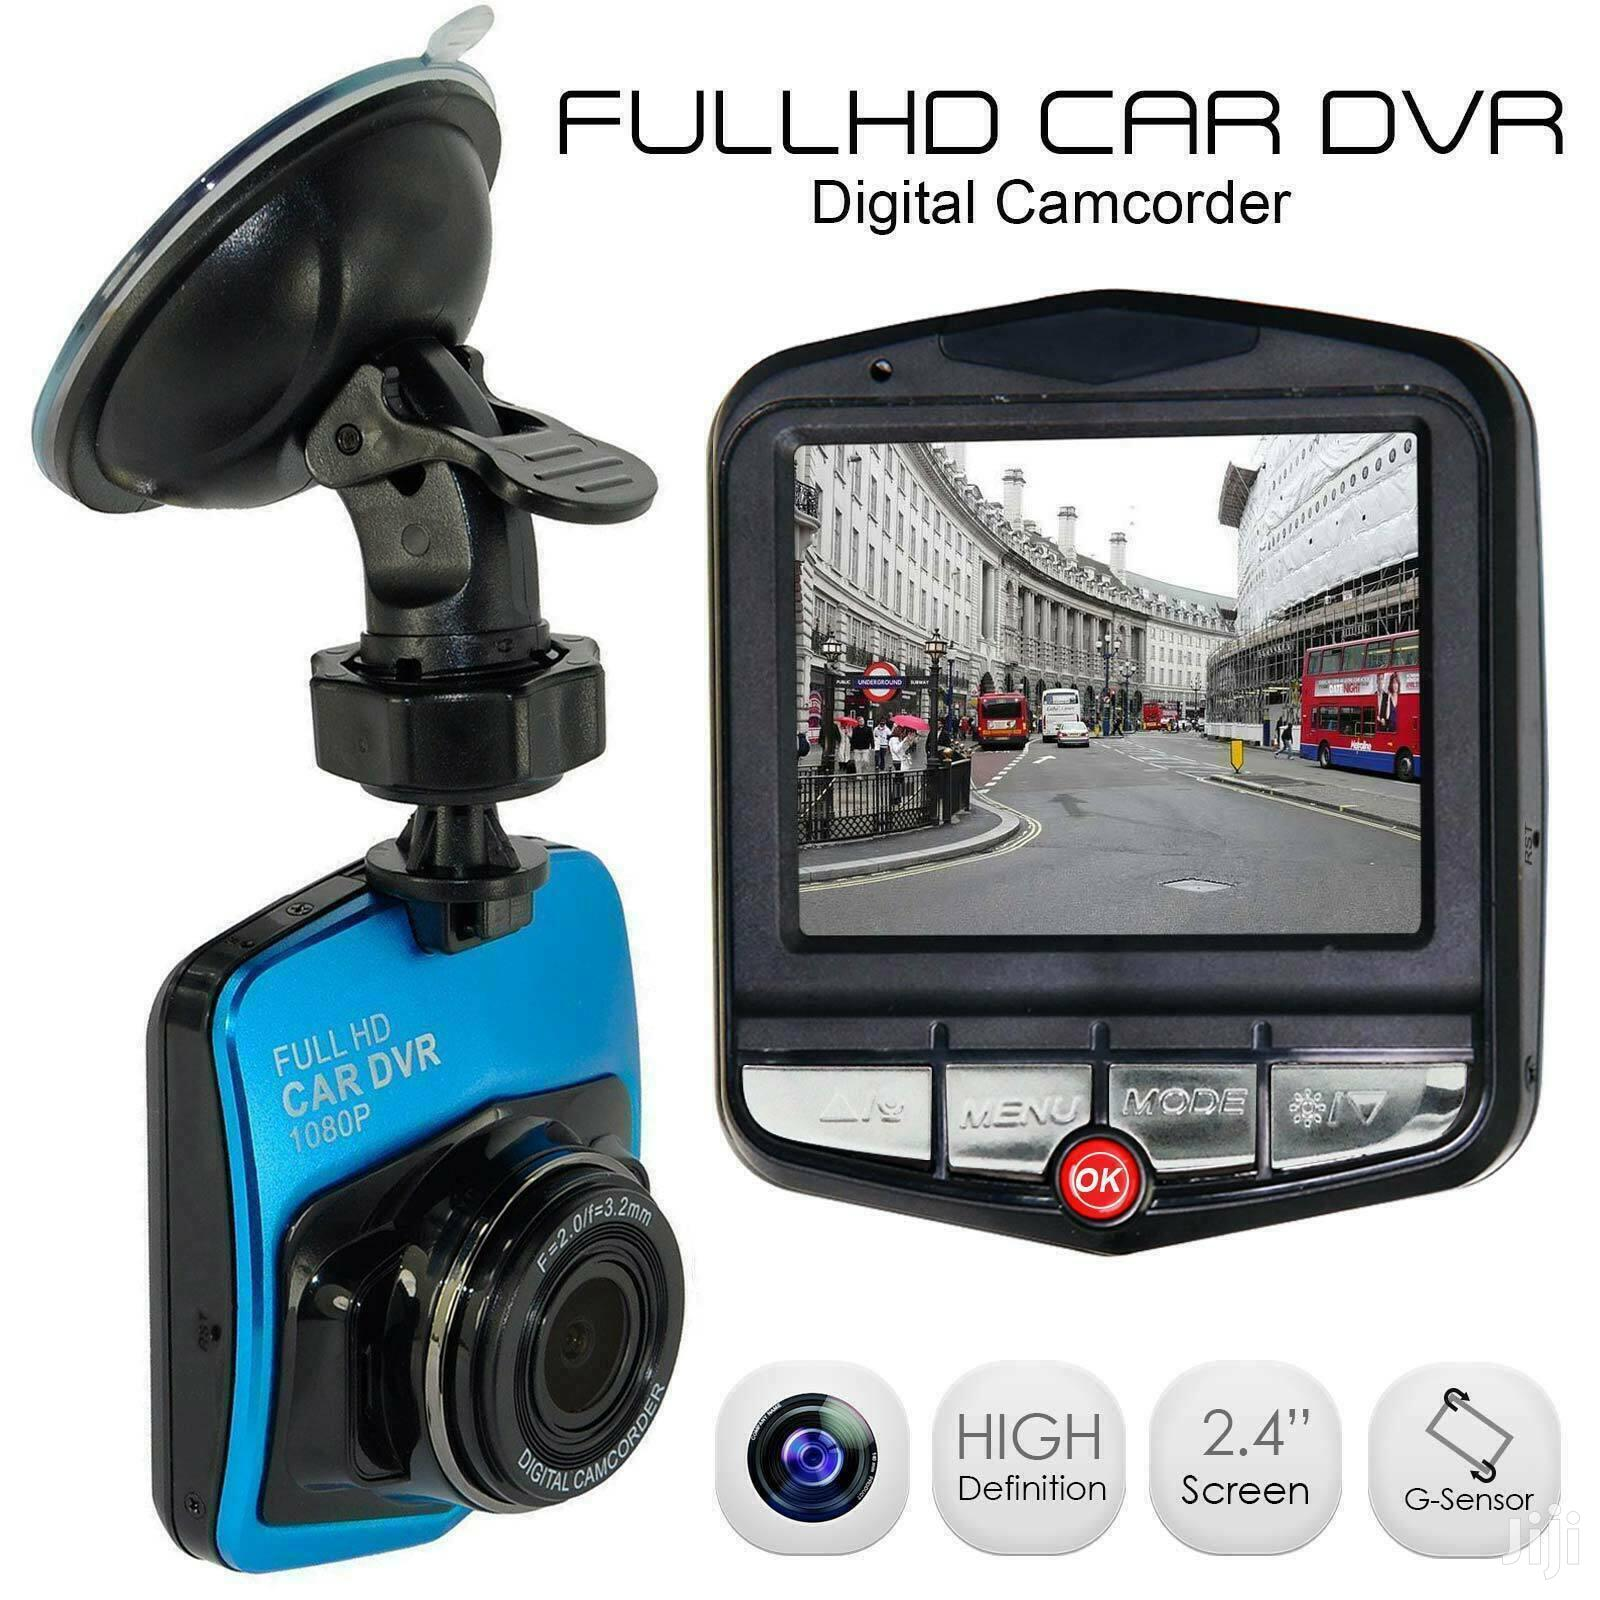 Full HD 1080P Car DVR Camera Dash Cam Video Recorder Blue